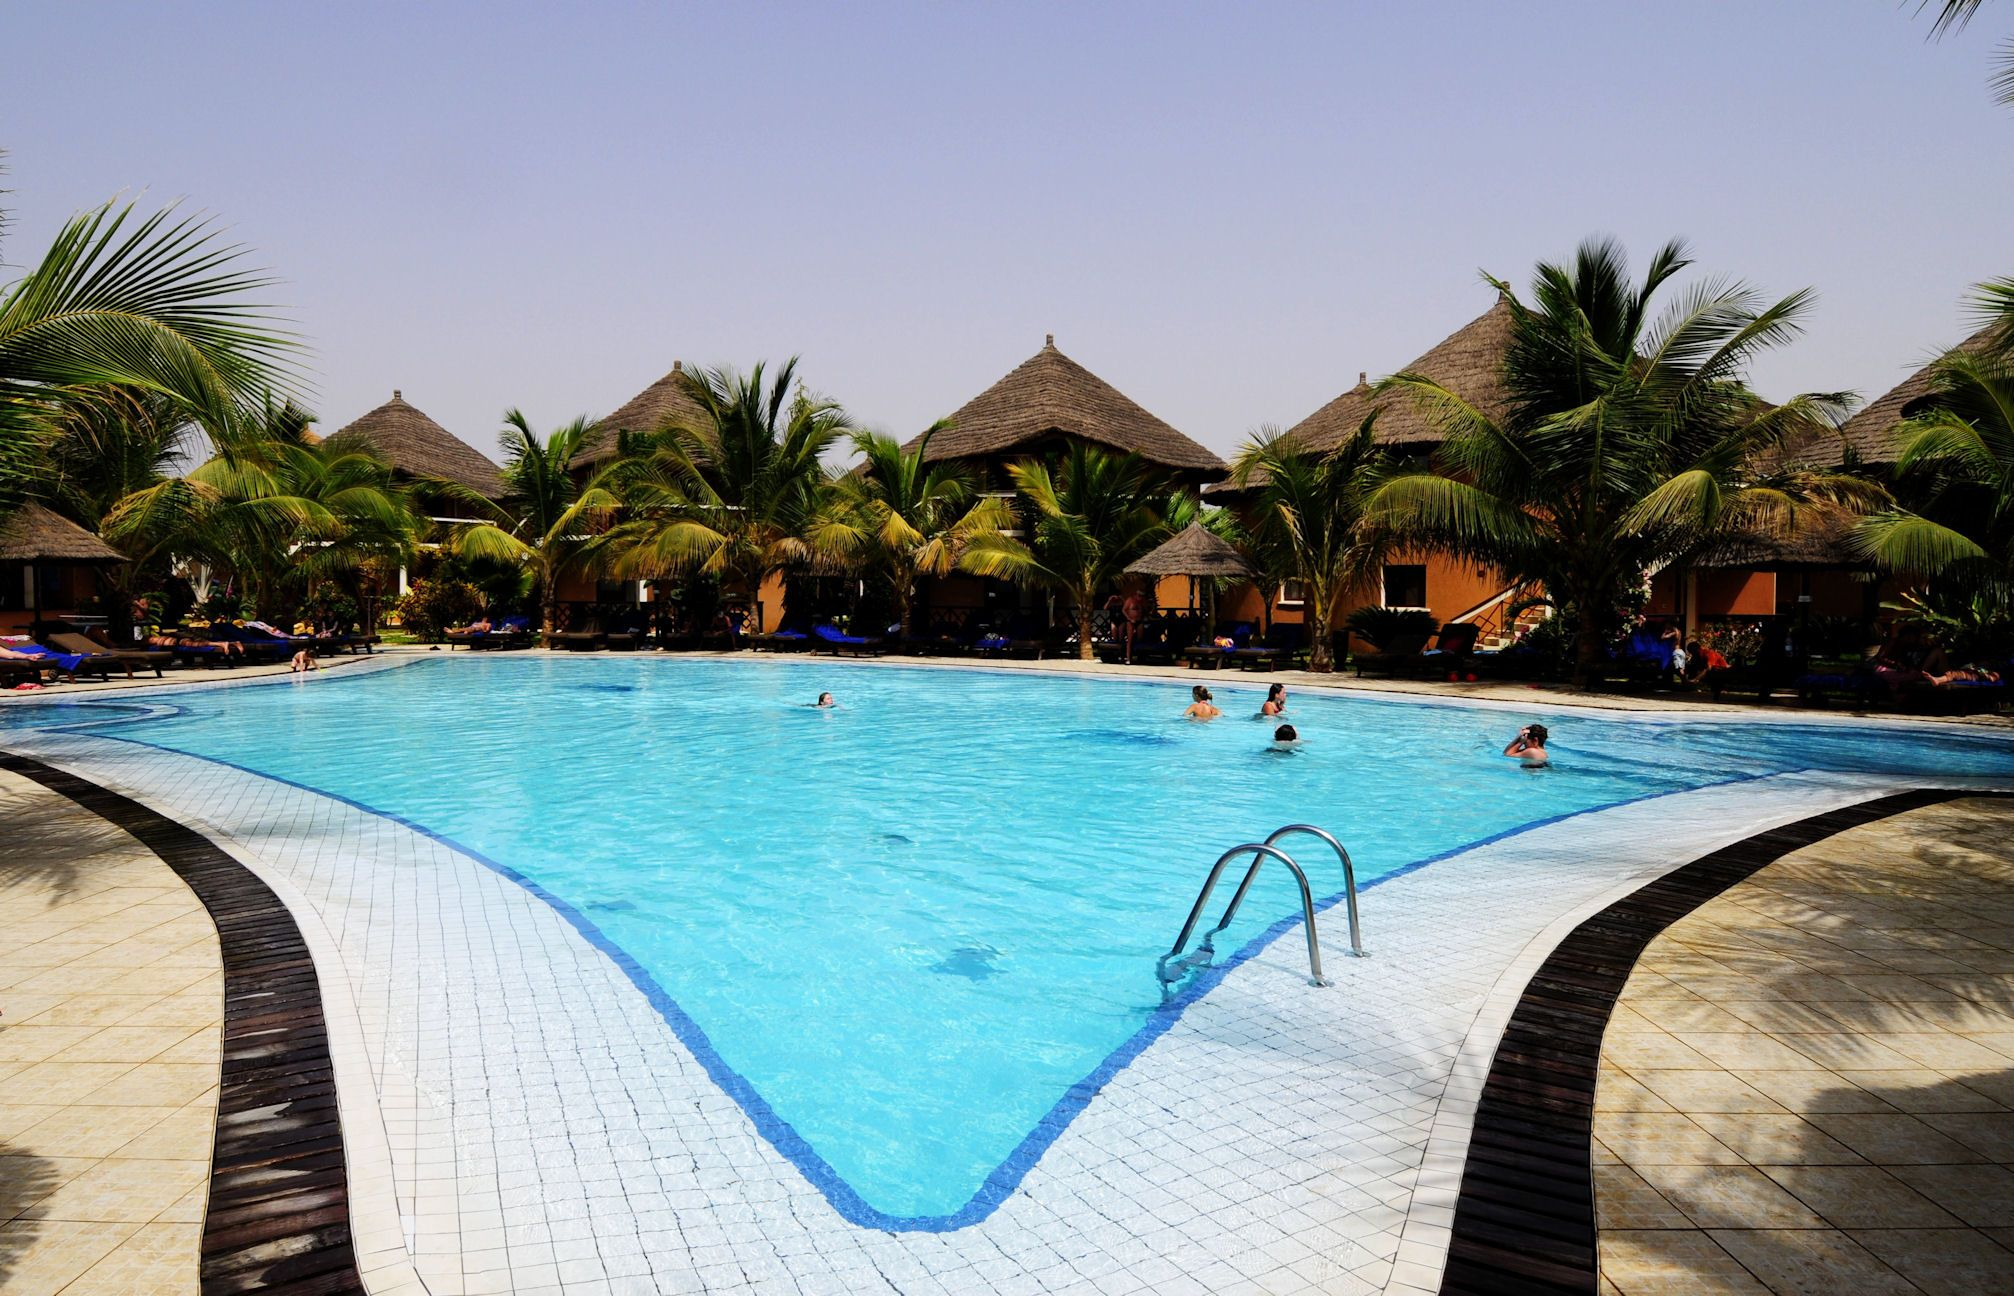 Lamantin Beach Resort Spa On Senegals Petite Cote Features Traditional African Cottages Made Of Mud